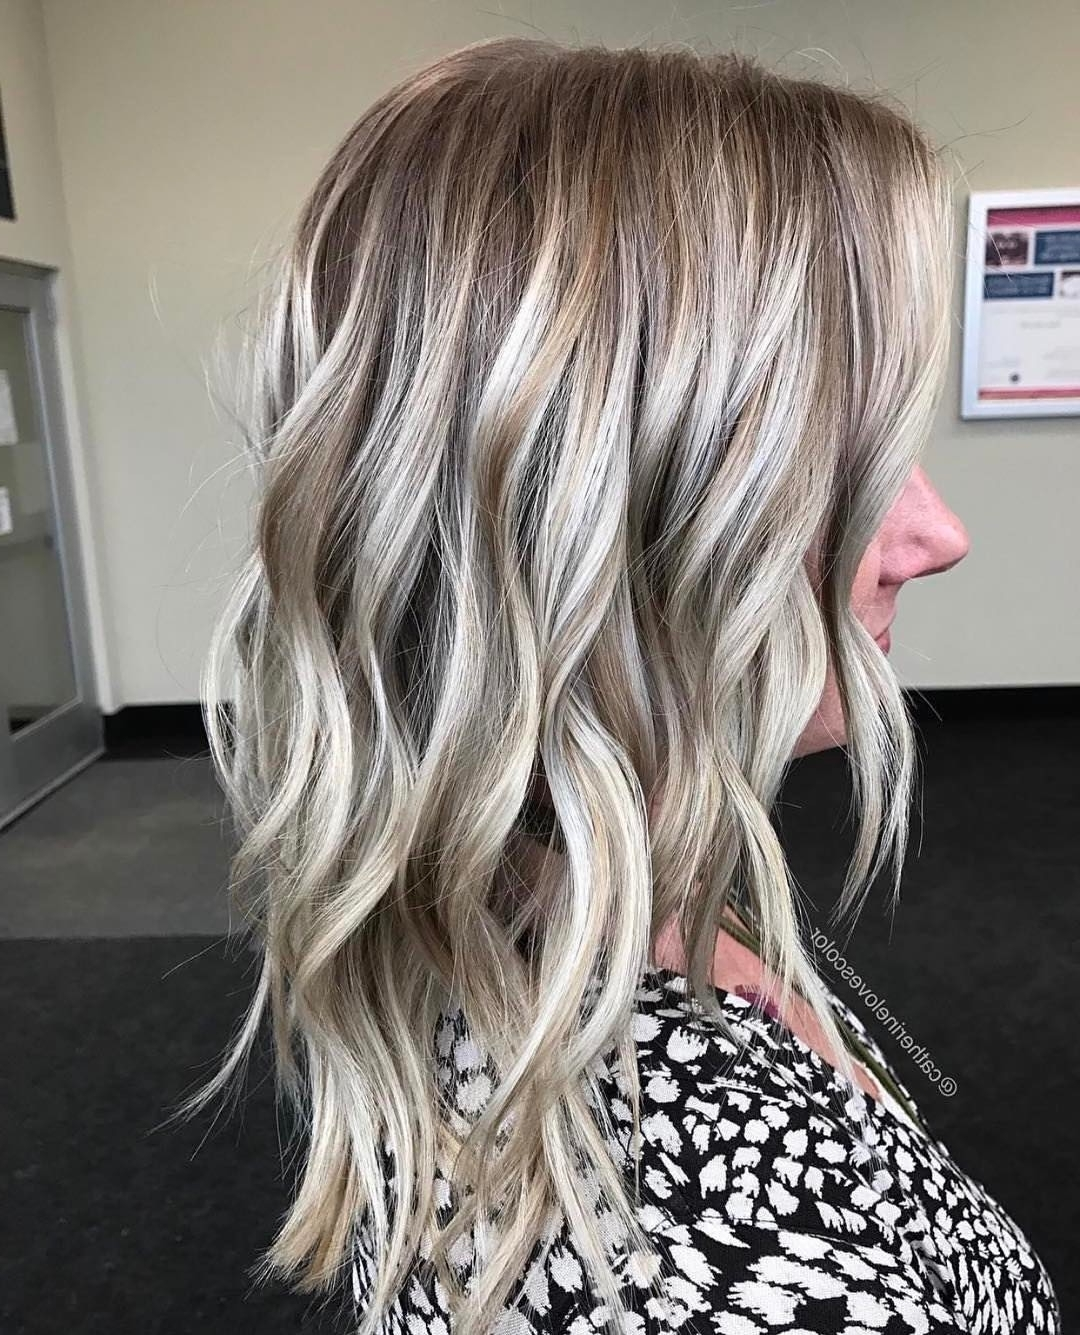 Trendy Cropped Platinum Blonde Bob Hairstyles With 20 Adorable Ash Blonde Hairstyles To Try: Hair Color Ideas (View 16 of 20)